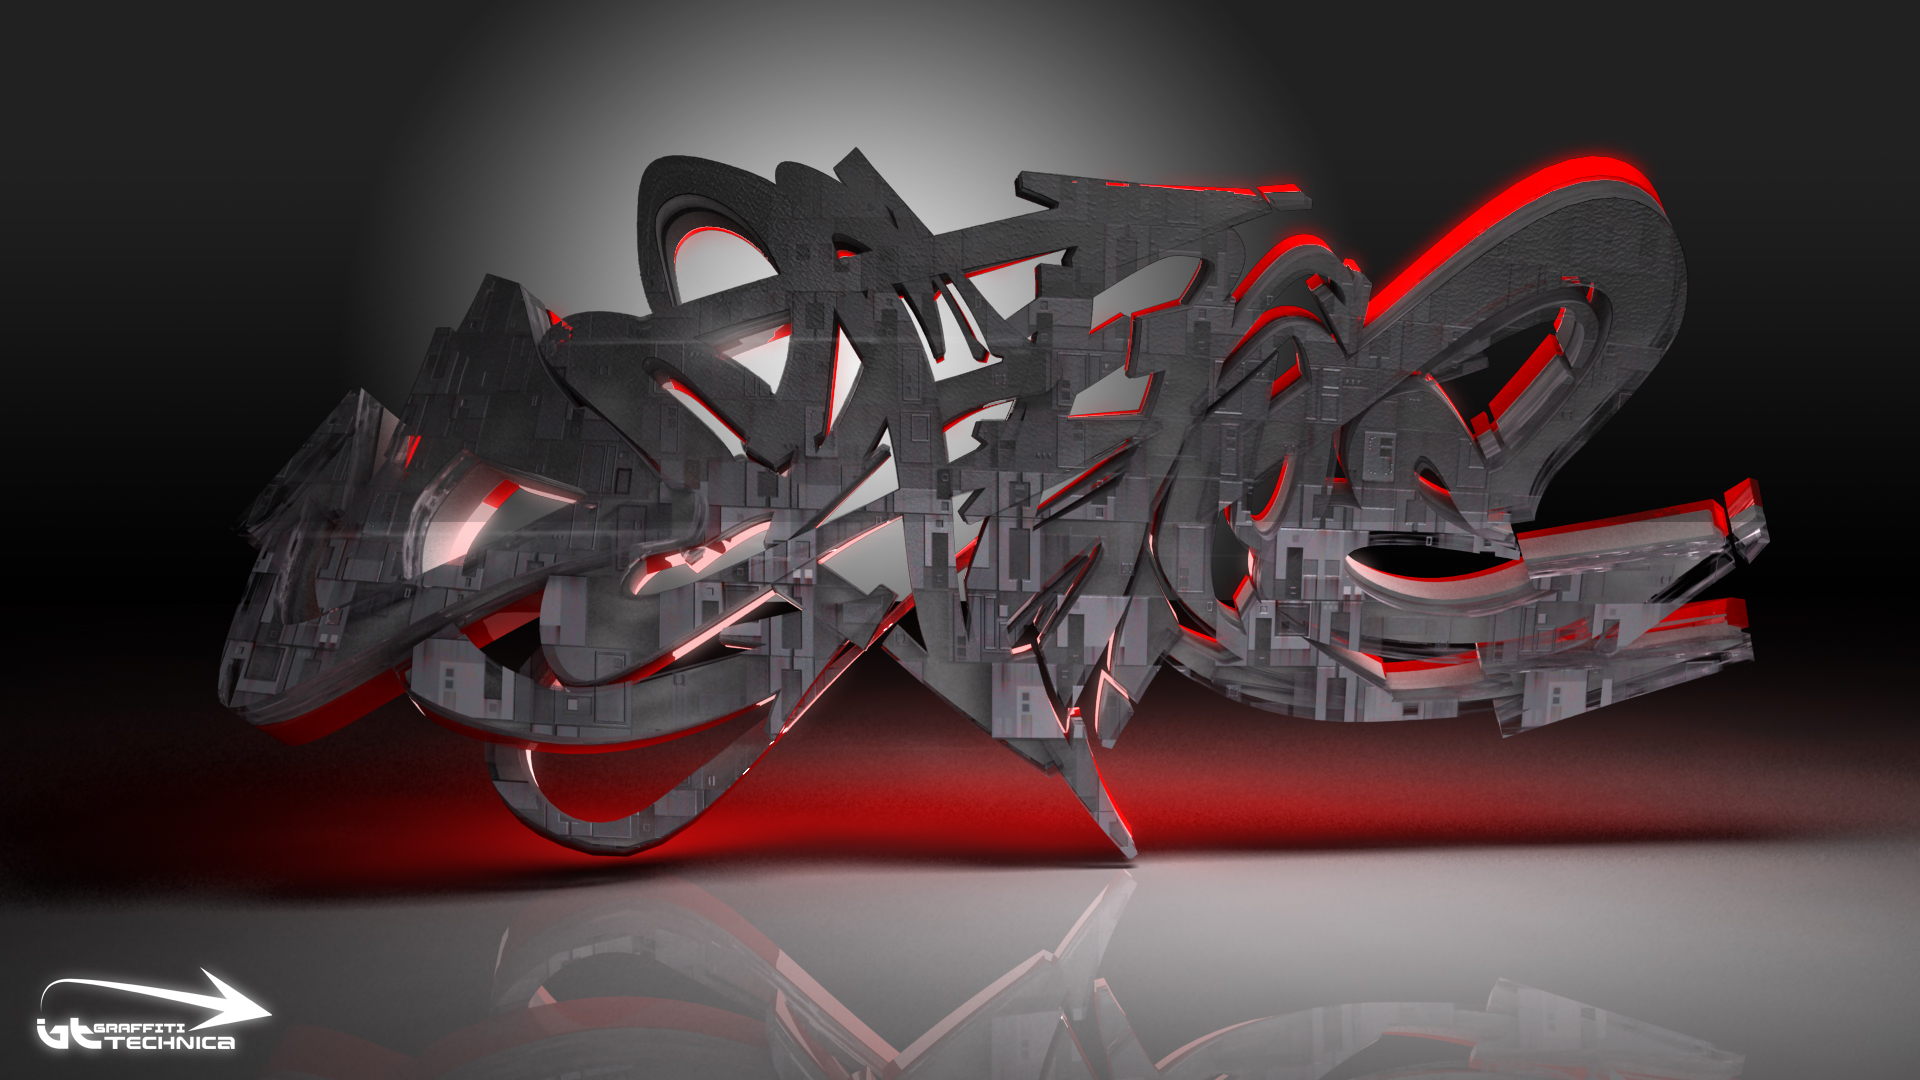 graffitis digitales